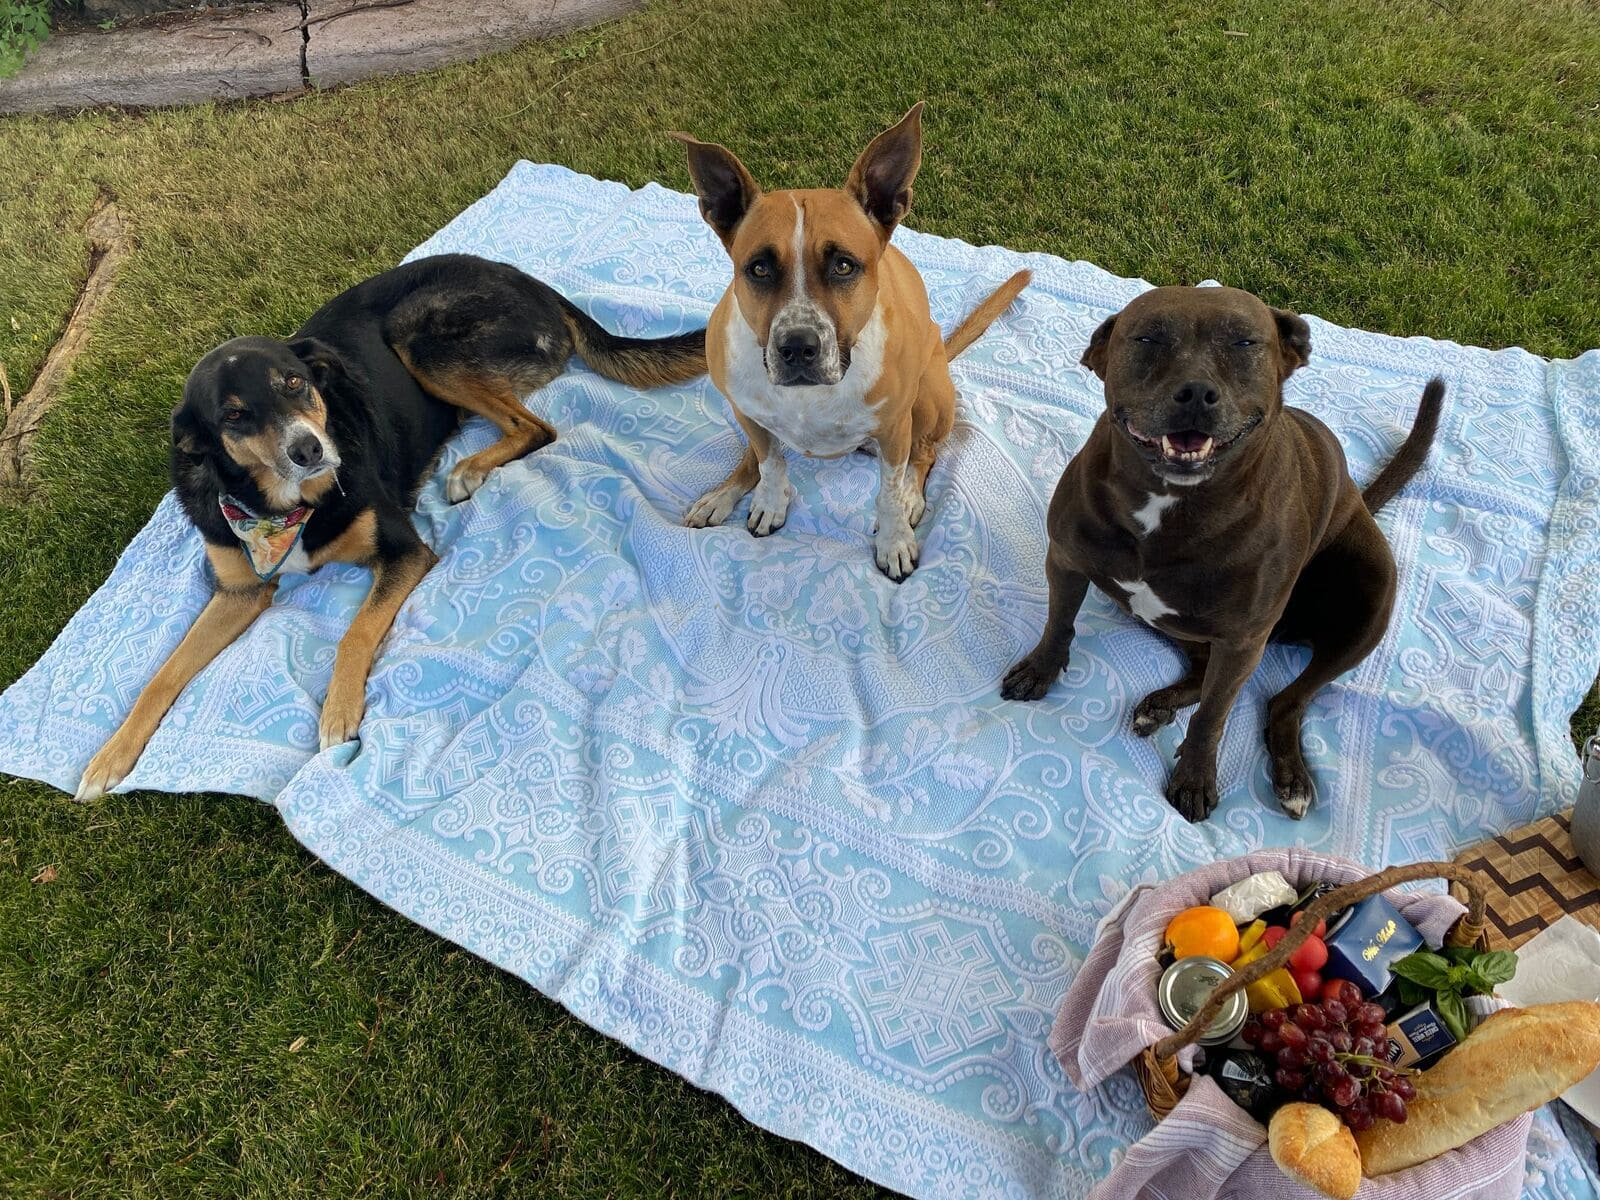 3 dogs on a blanket ready for a picinic